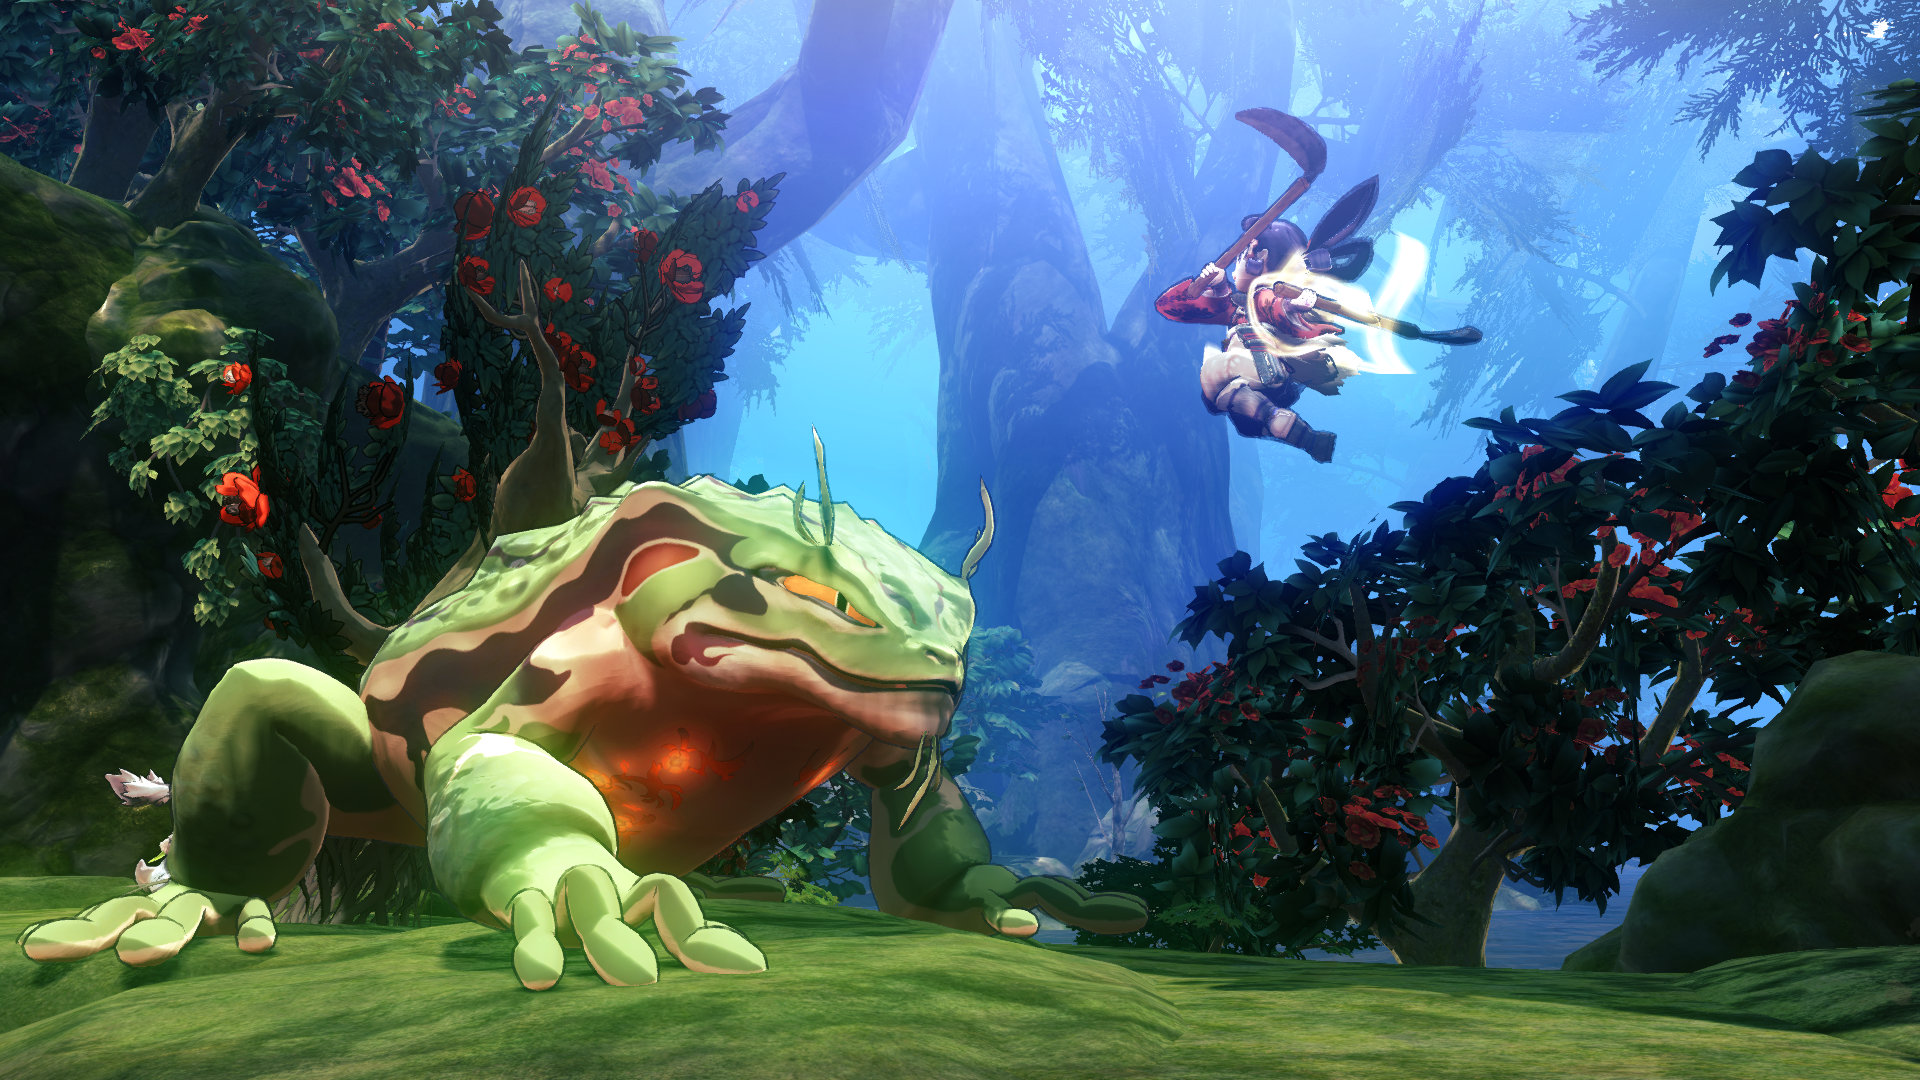 Screenshot From Sakuna: Of Rice And Ruin Featuring The Protagonist Fighting A Giant Lizard